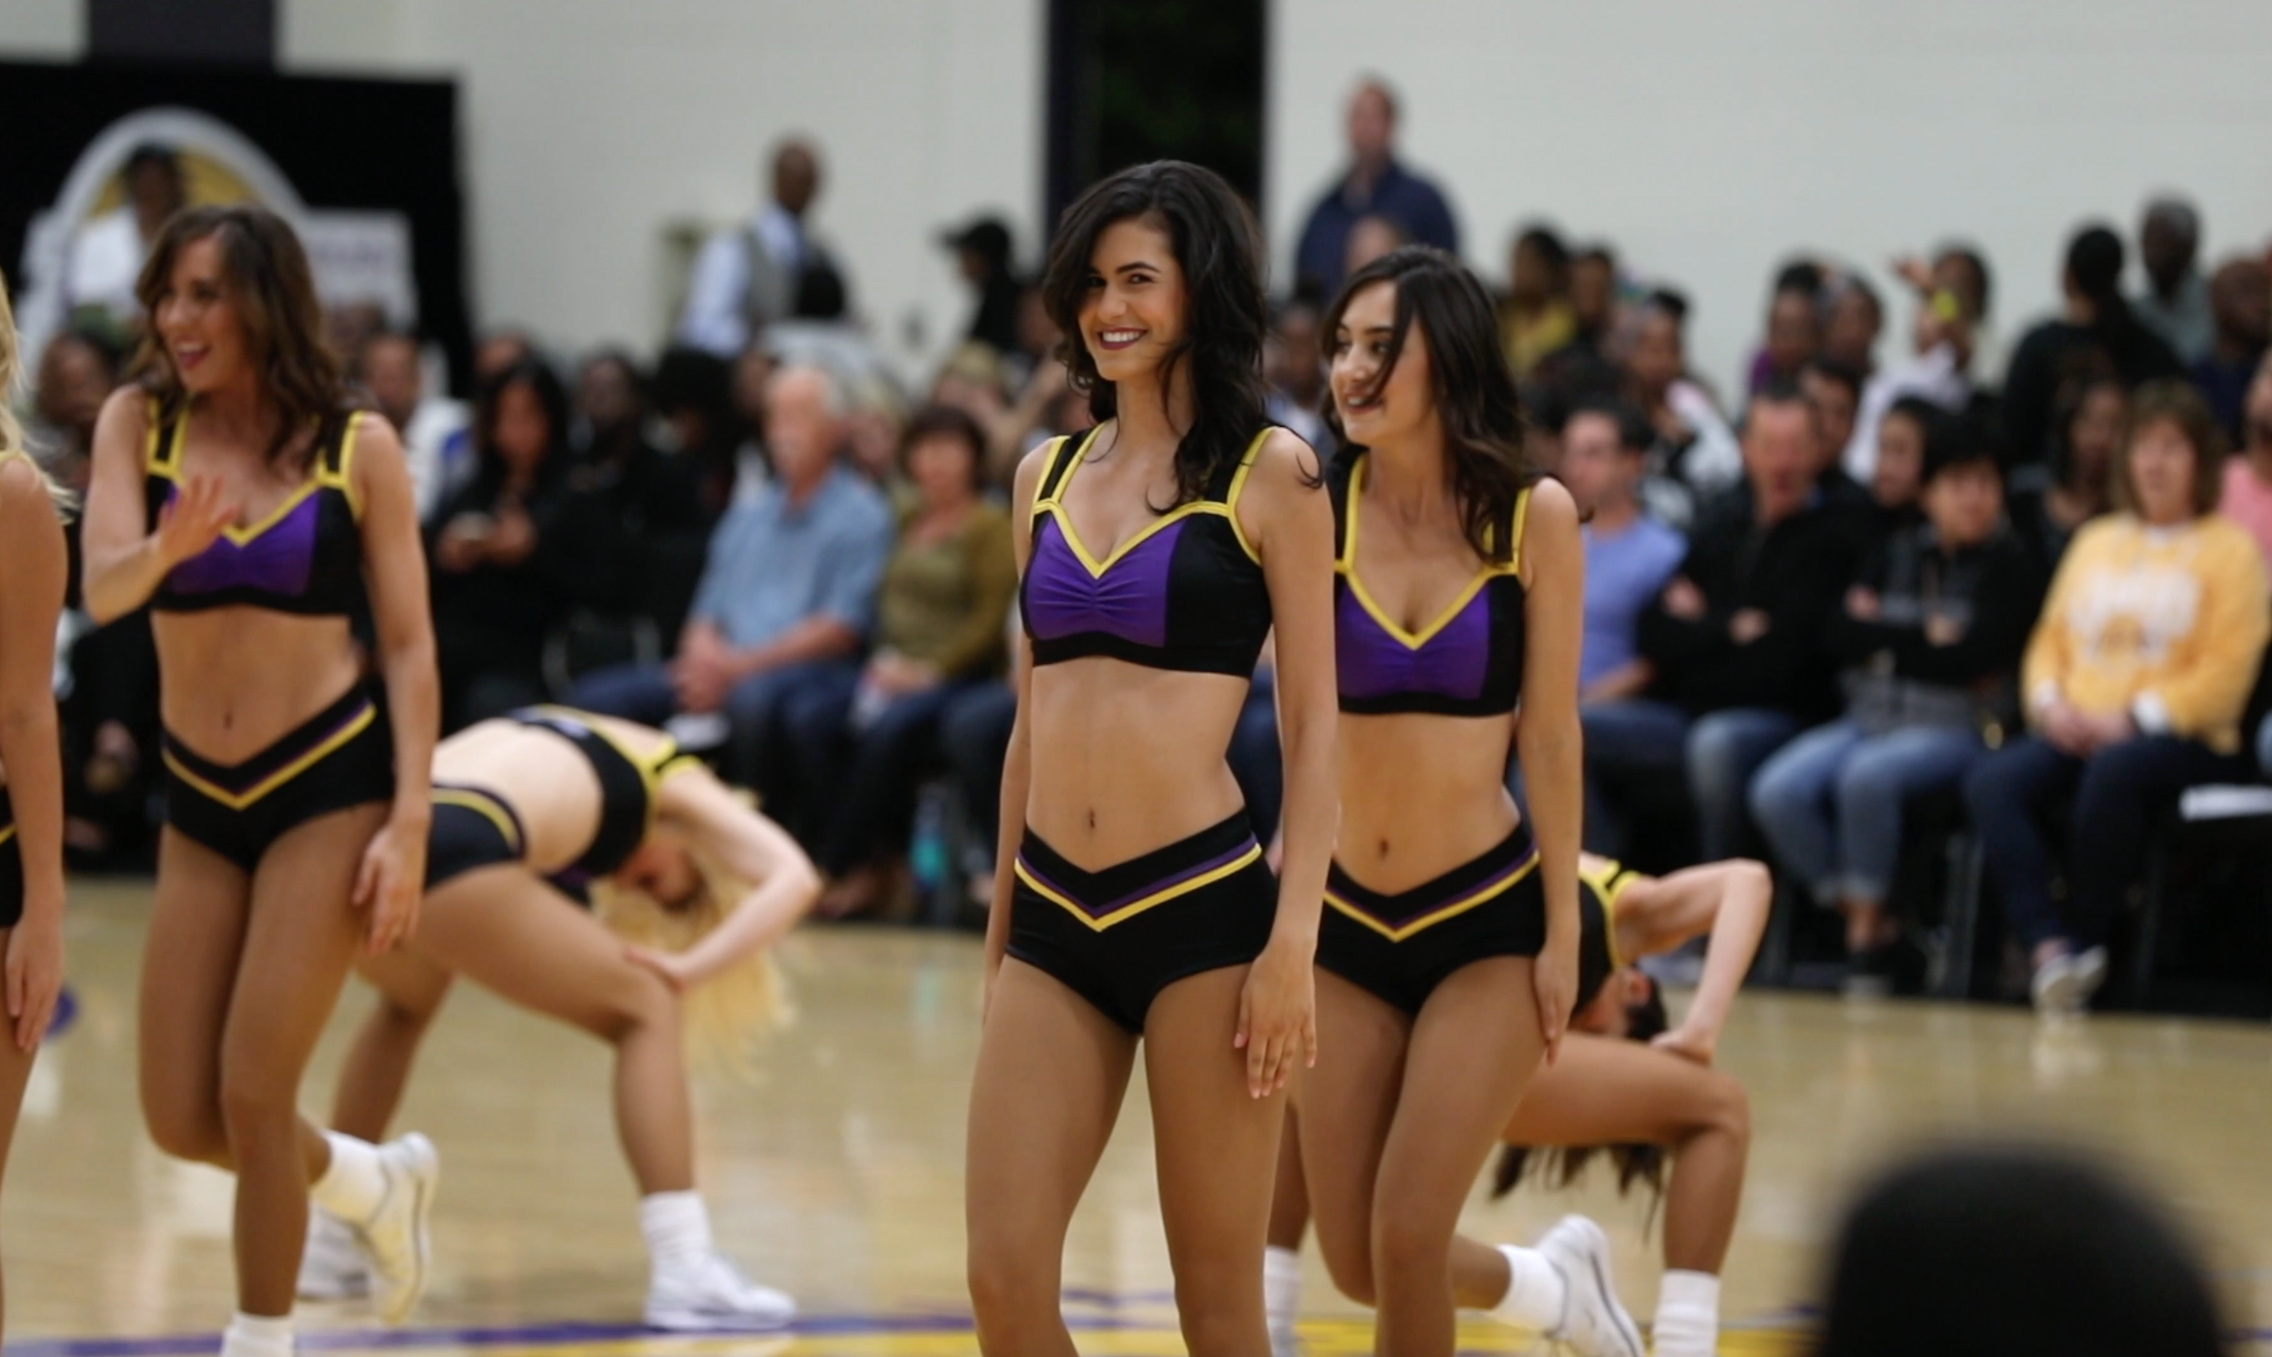 Los Angeles D-Fenders, Great Entertainment in El Segundo. (Video)